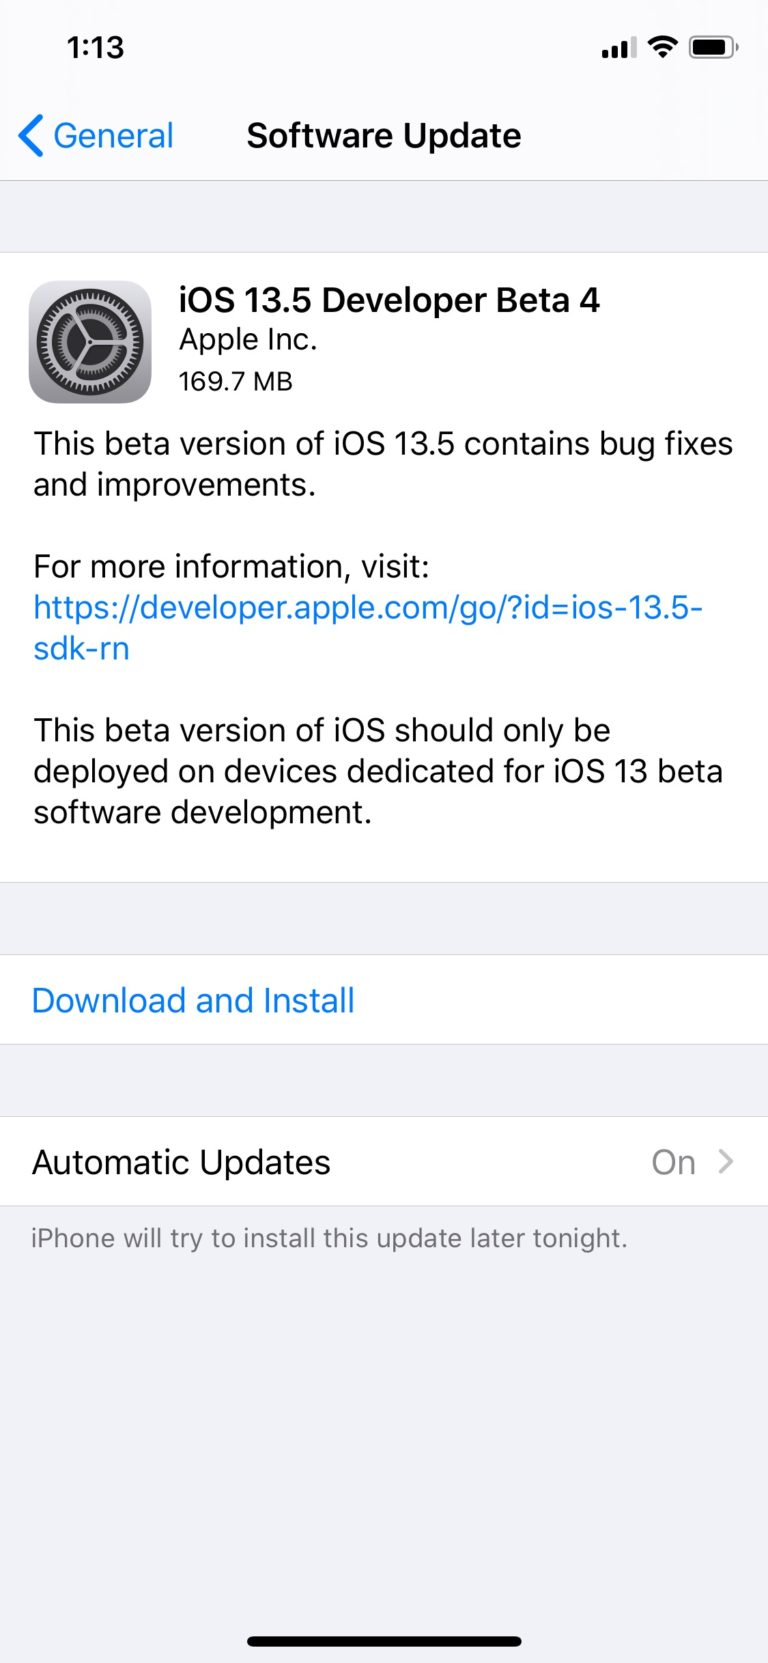 Apple Releases Beta 4th of iOS 13.5 and iPadOS 13.5 [Download]